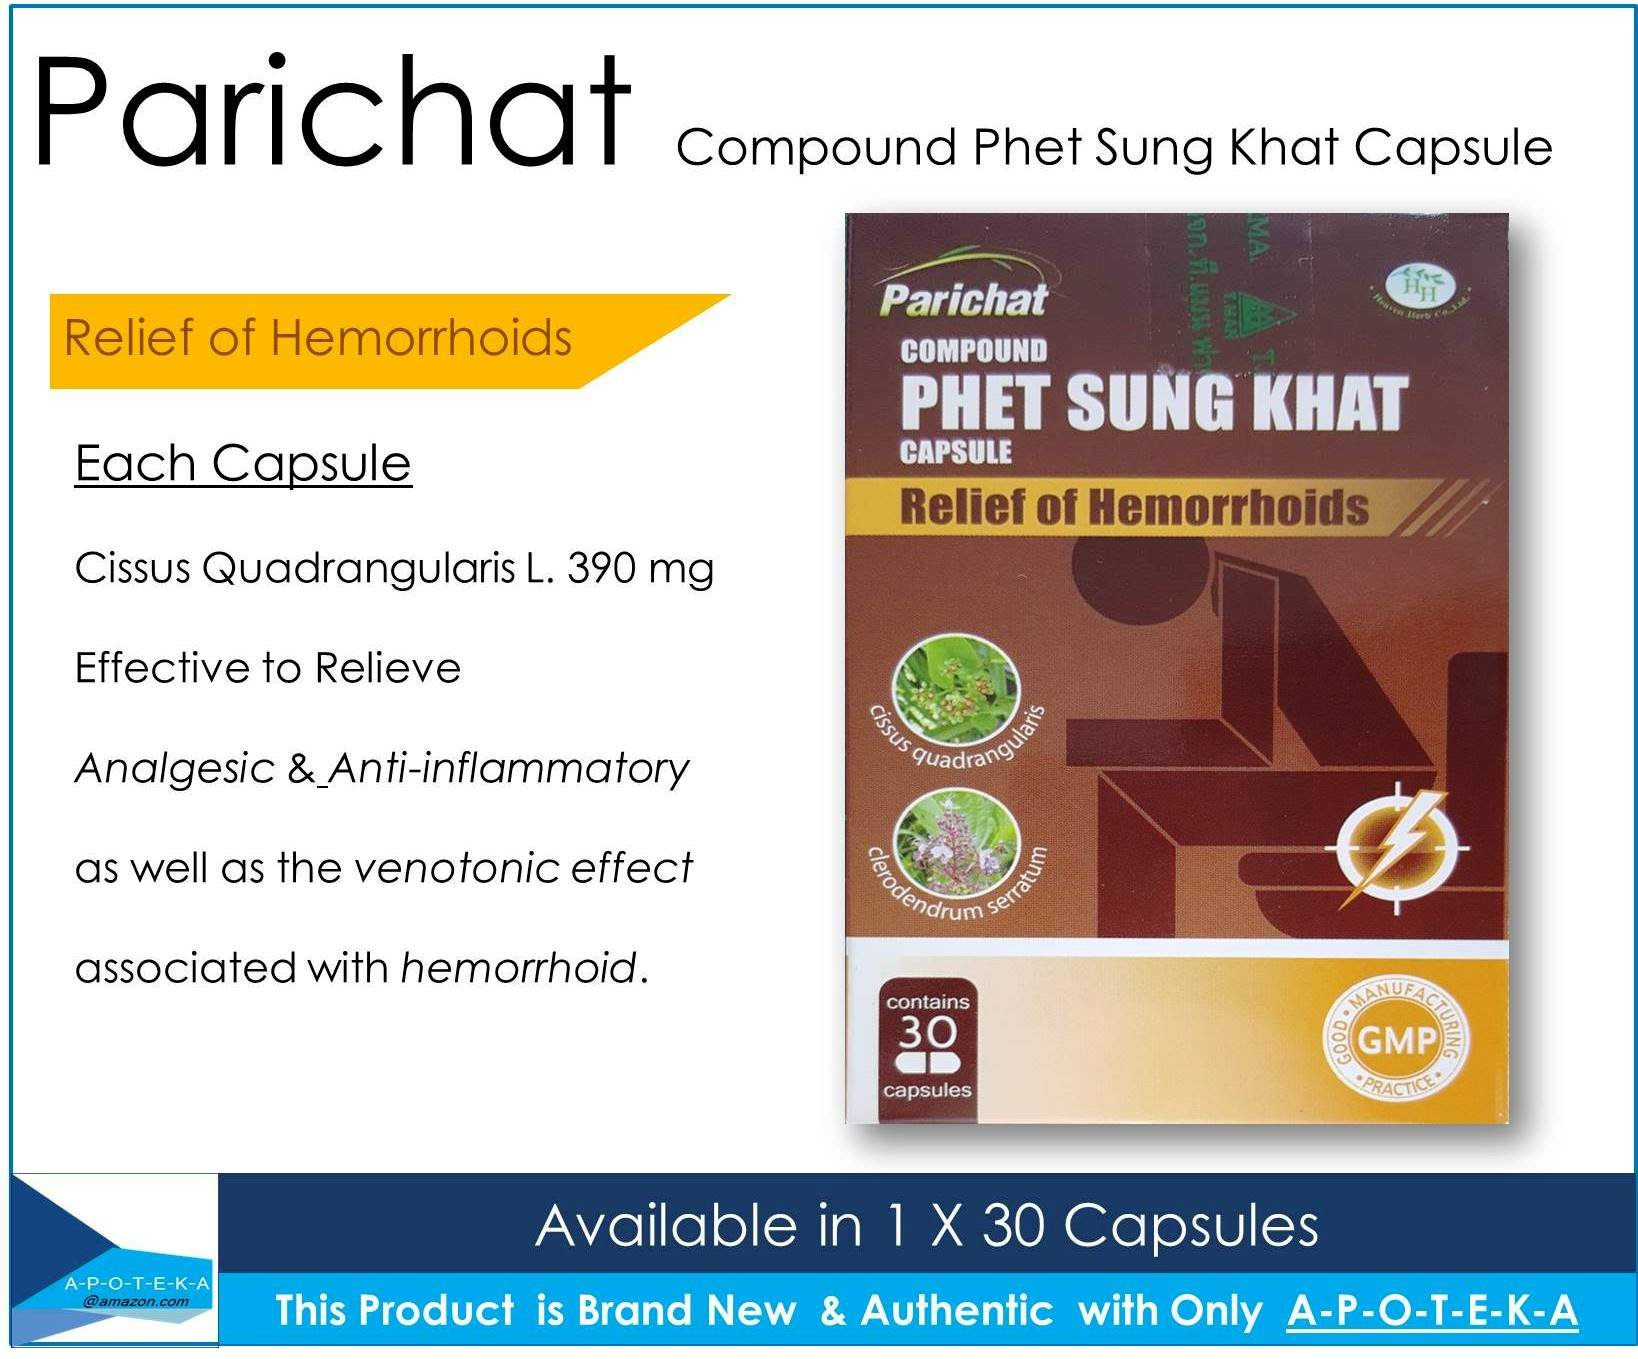 Natural Relief of Hemorrhoids Compound (Parichat Phet Sung Khat 1 X 30 Capsules) Contains Cissus Quadrangularis L. 390 mg Effective to Relieve analgesic and anti-inflammatory activities of hemorrhoid